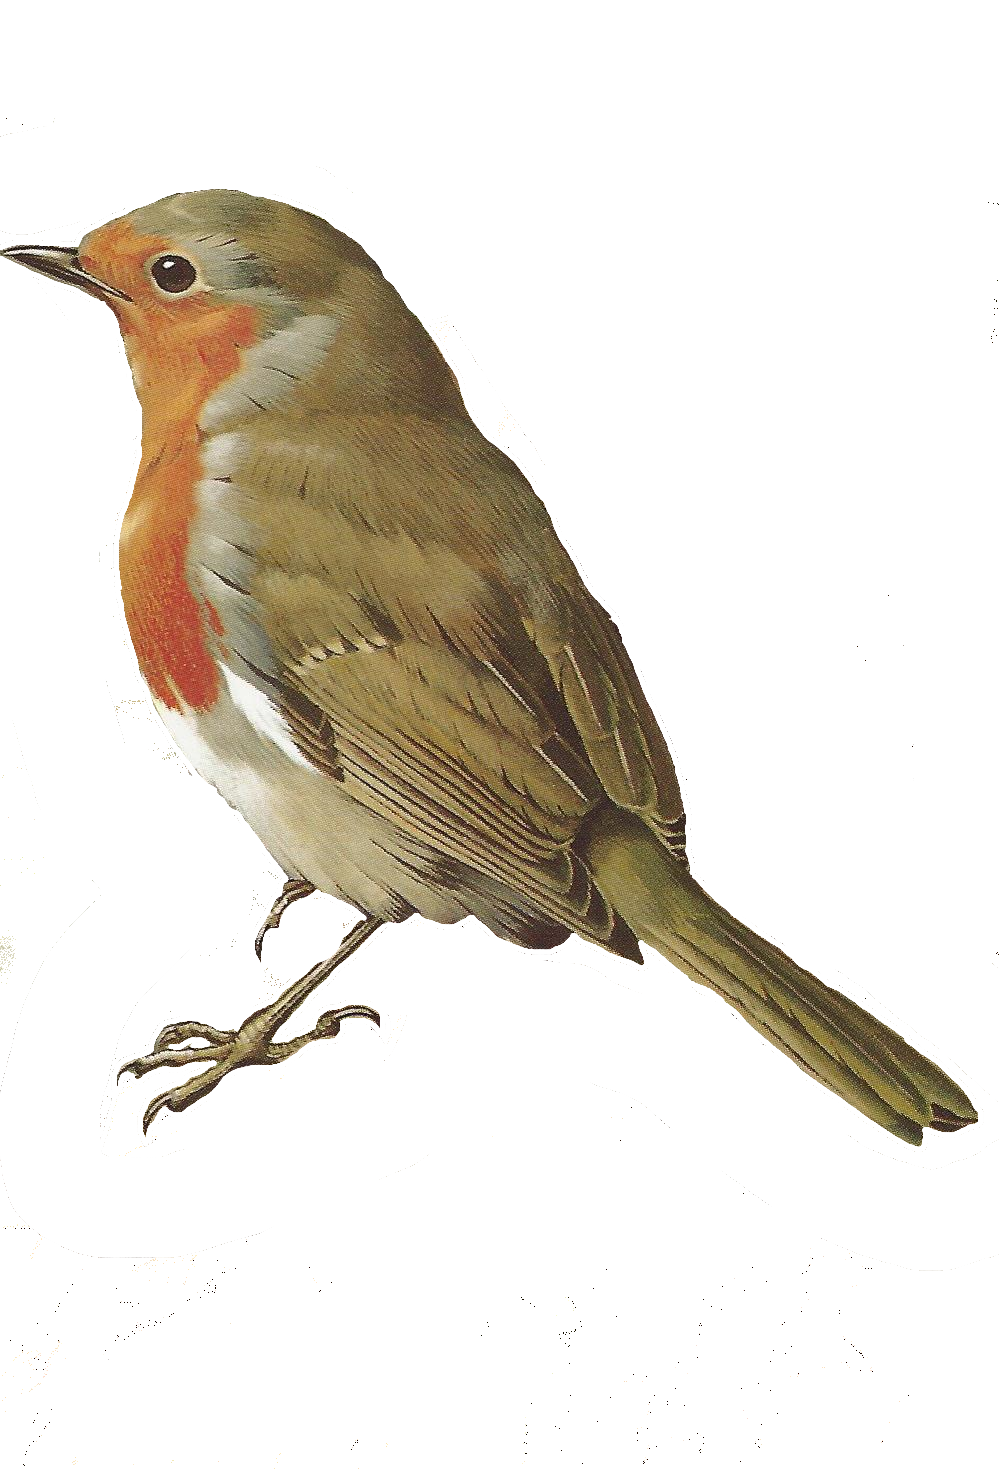 Robin clipart wildlife british. Free images of birds